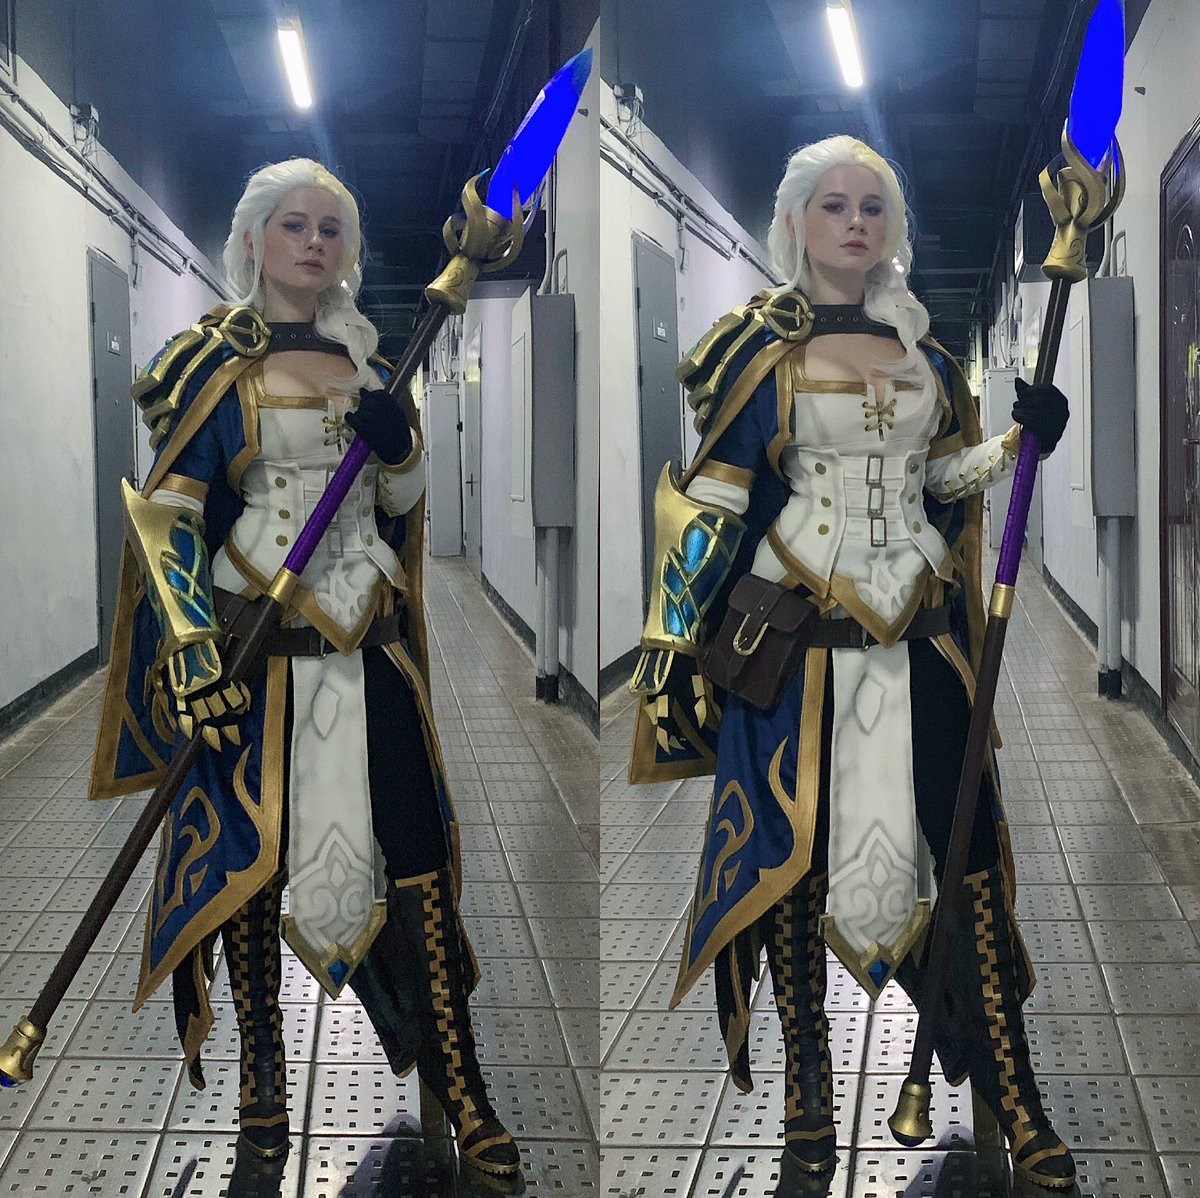 FINALLY I MADE IT 😱❤️ Thanks to everyone who supported me all this time! Costume made by me; The staff made by @vitaliy_joiner; Special thanks to @NargaLifestream for useful tutorial! @BlizzardCSEU_RU @Blizzard_Ent #cosplay #cosplayer #warcraft